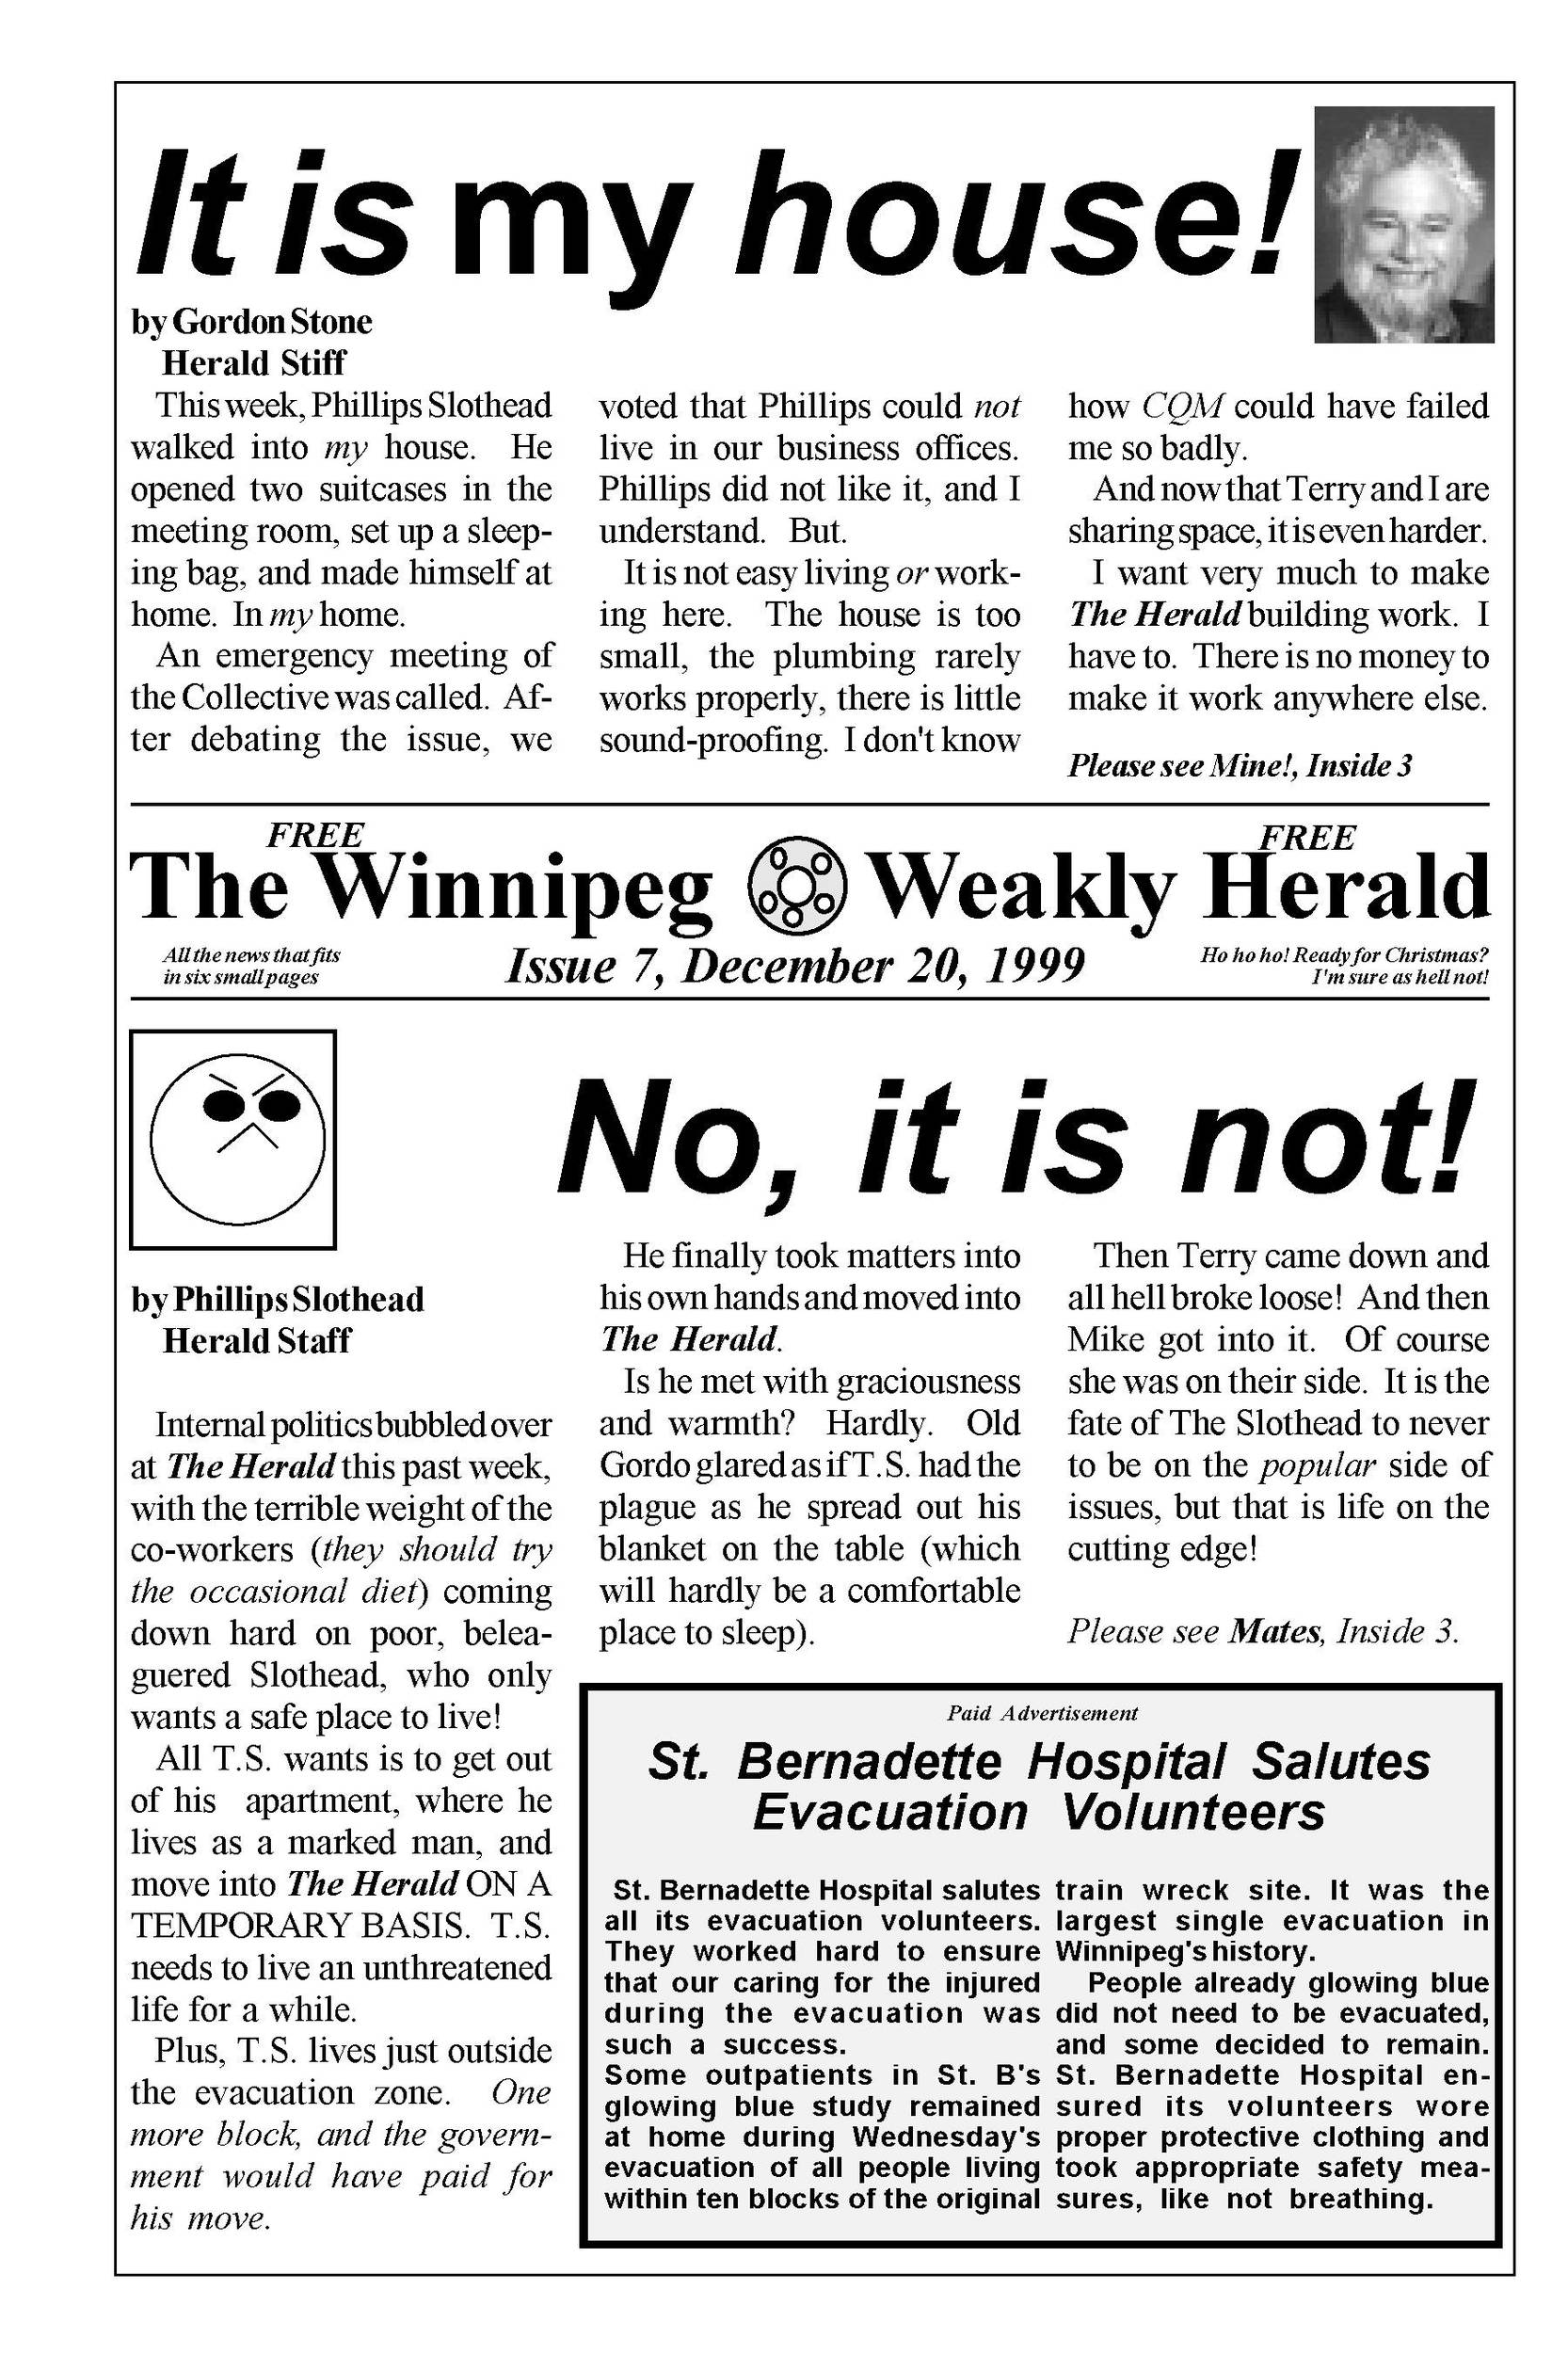 The Weakly Herald Issue 7